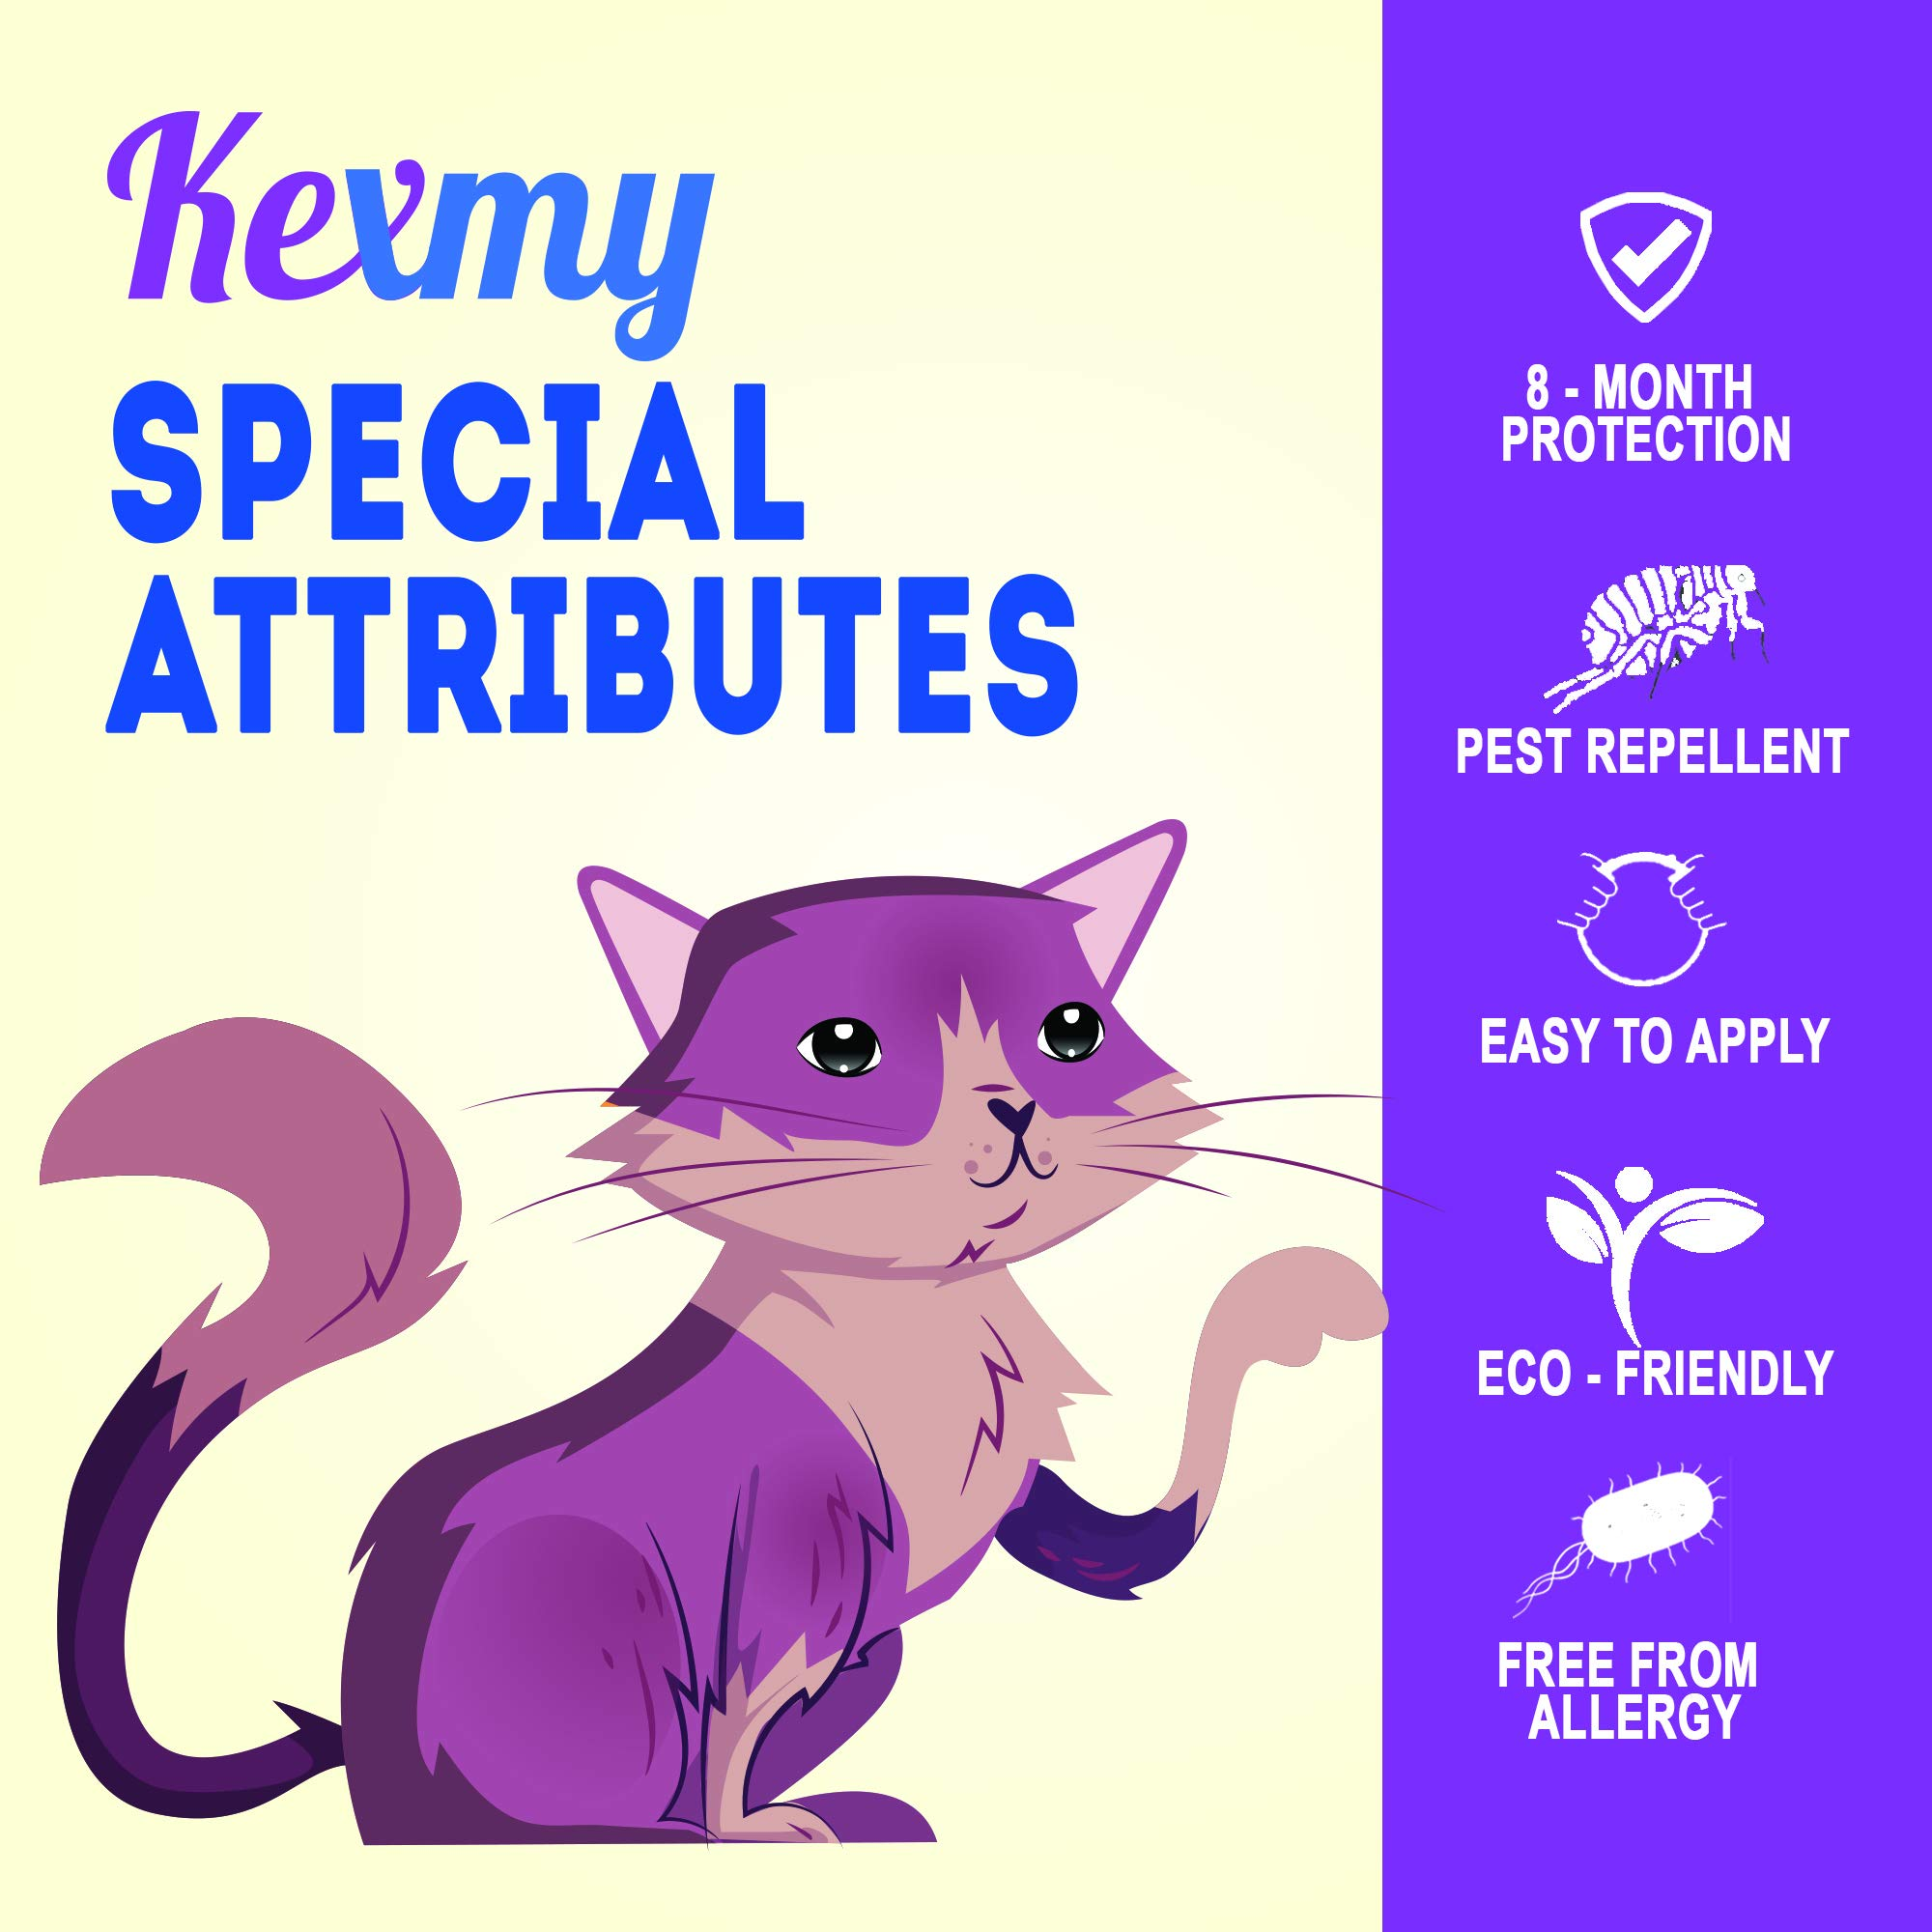 100/% Natural Essential Oils That Kill and Repel Fleas Cat Flea Treatment 8 Months Flea Control and Protection for Cats KEXMY Cat Tick and Flea Collar Adjustable /& Waterproof Cat Collar